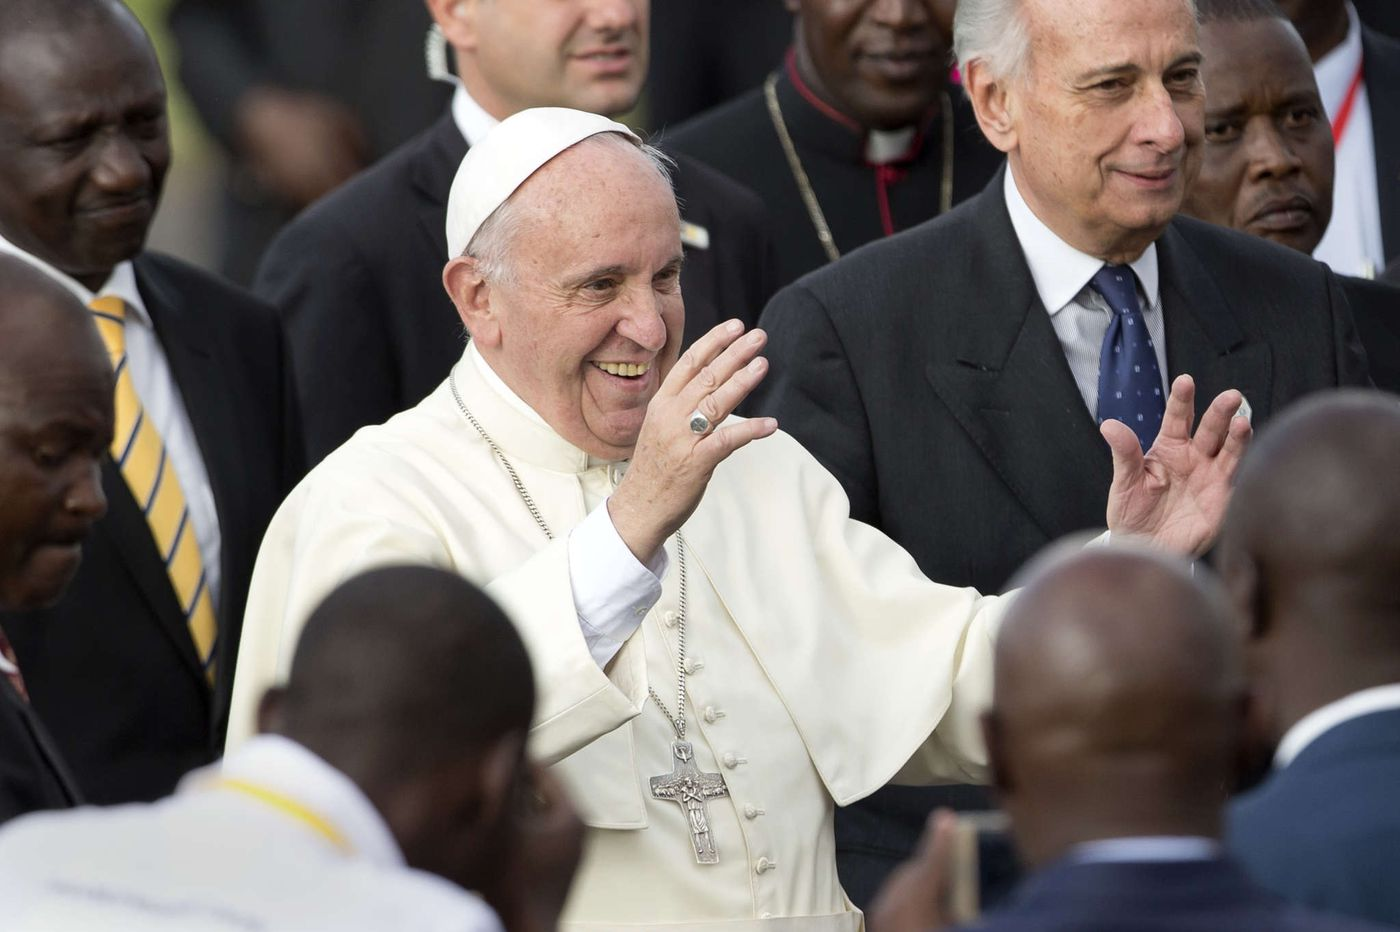 Pope Francis starts Africa trip in Nairobi